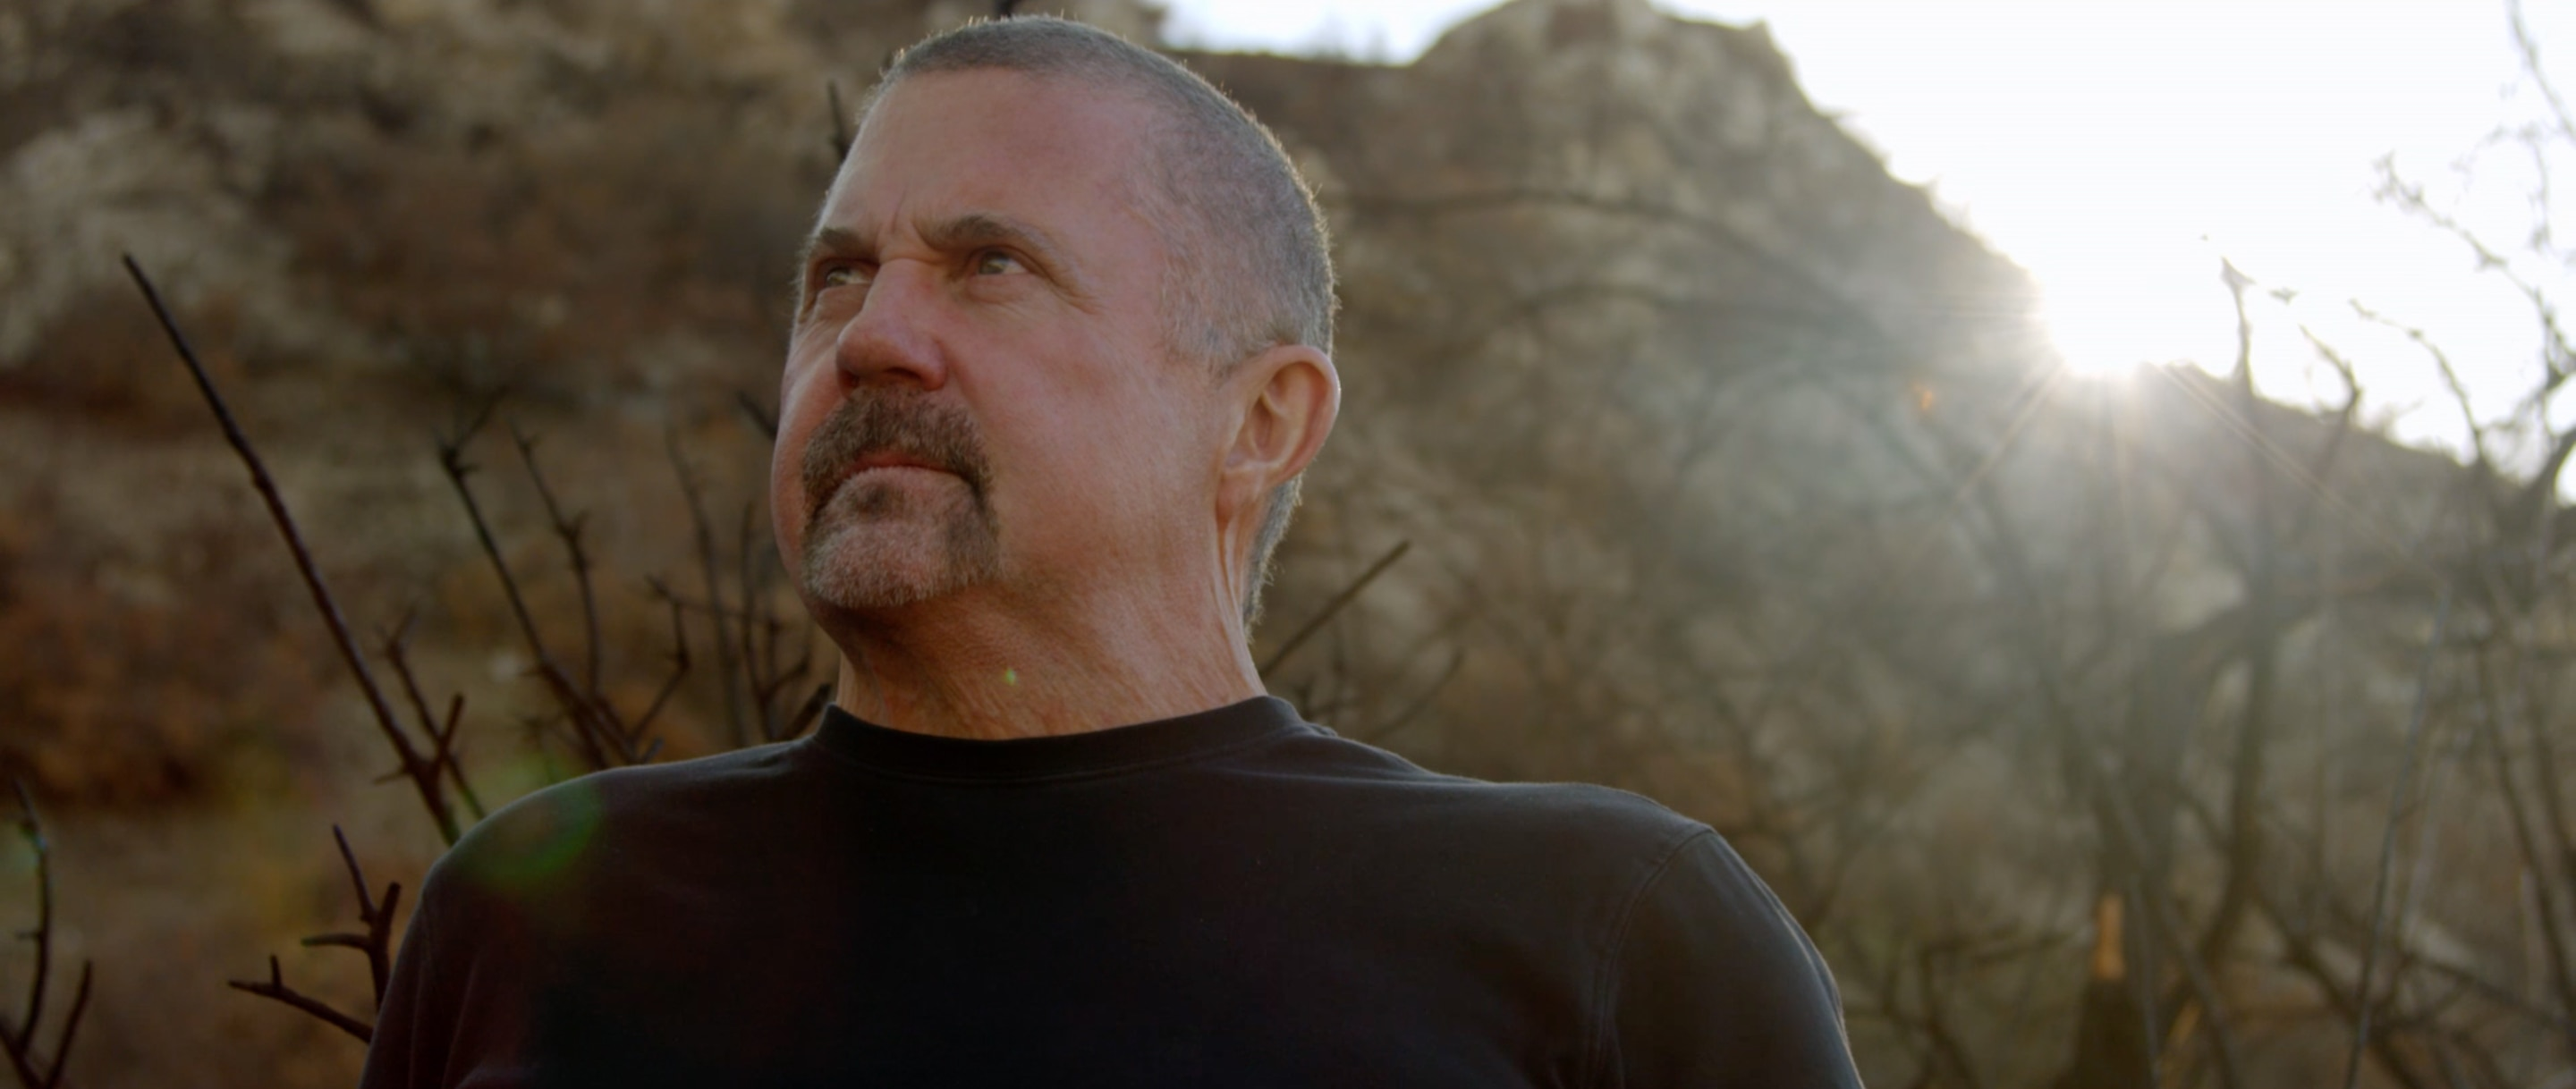 1KaneHodder Broll2 - To Hell and Back: the Kane Hodder Story (2017)